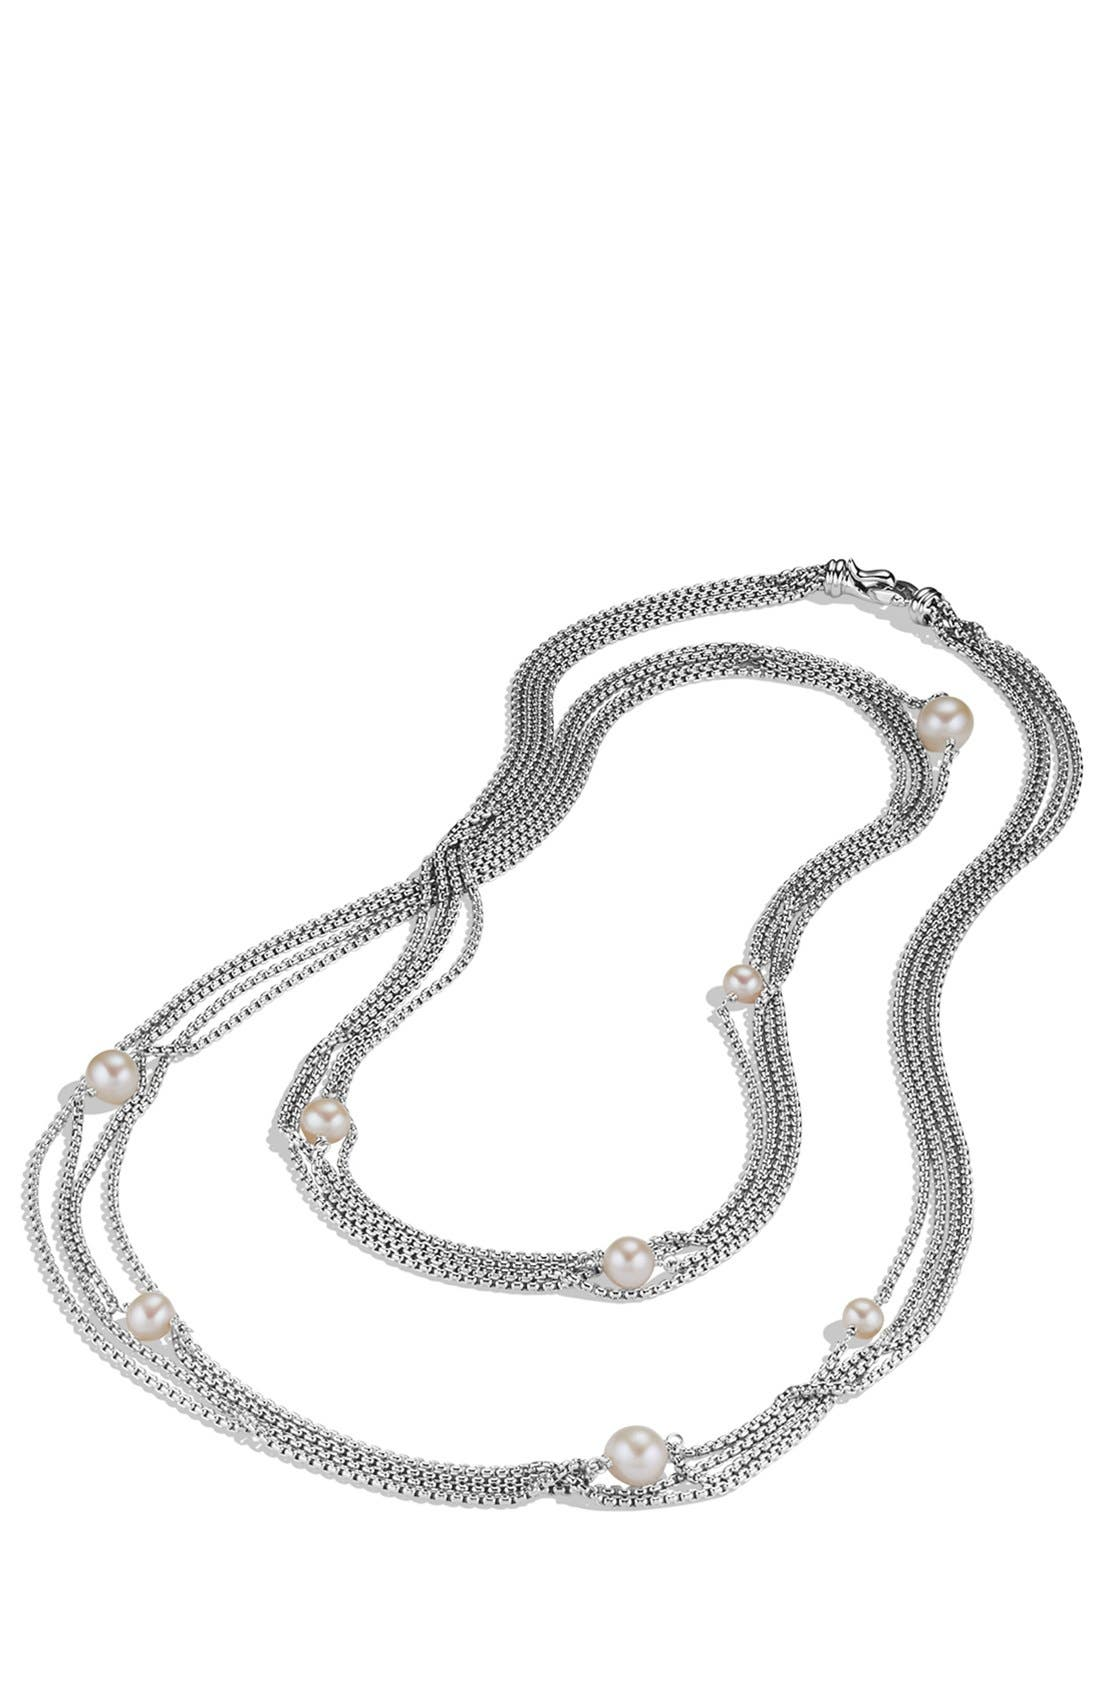 Four-Row Chain Necklace with Pearls,                             Alternate thumbnail 2, color,                             Pearl